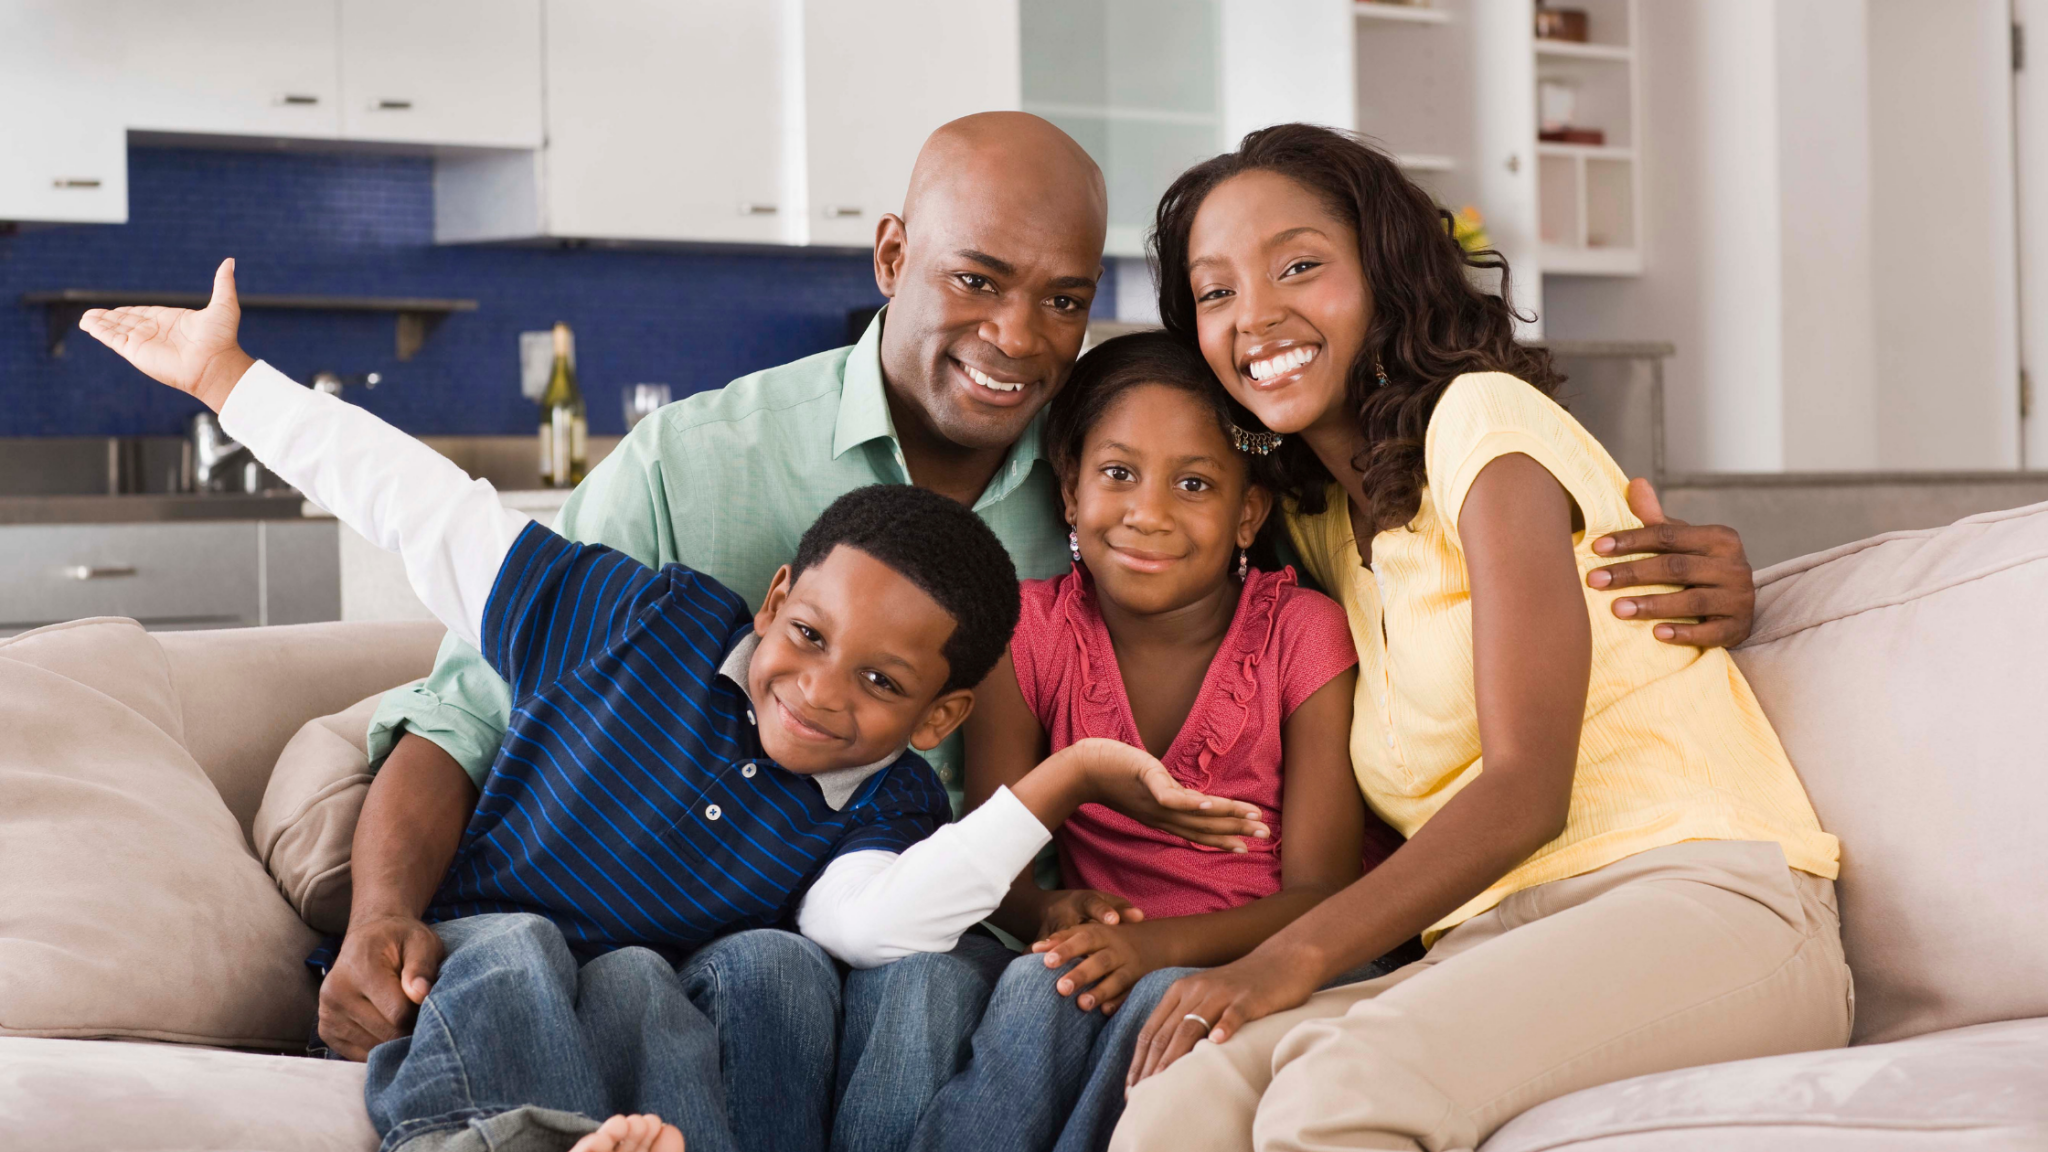 A Family That Has Successfully Reduced Their Child's ADHD Symptoms